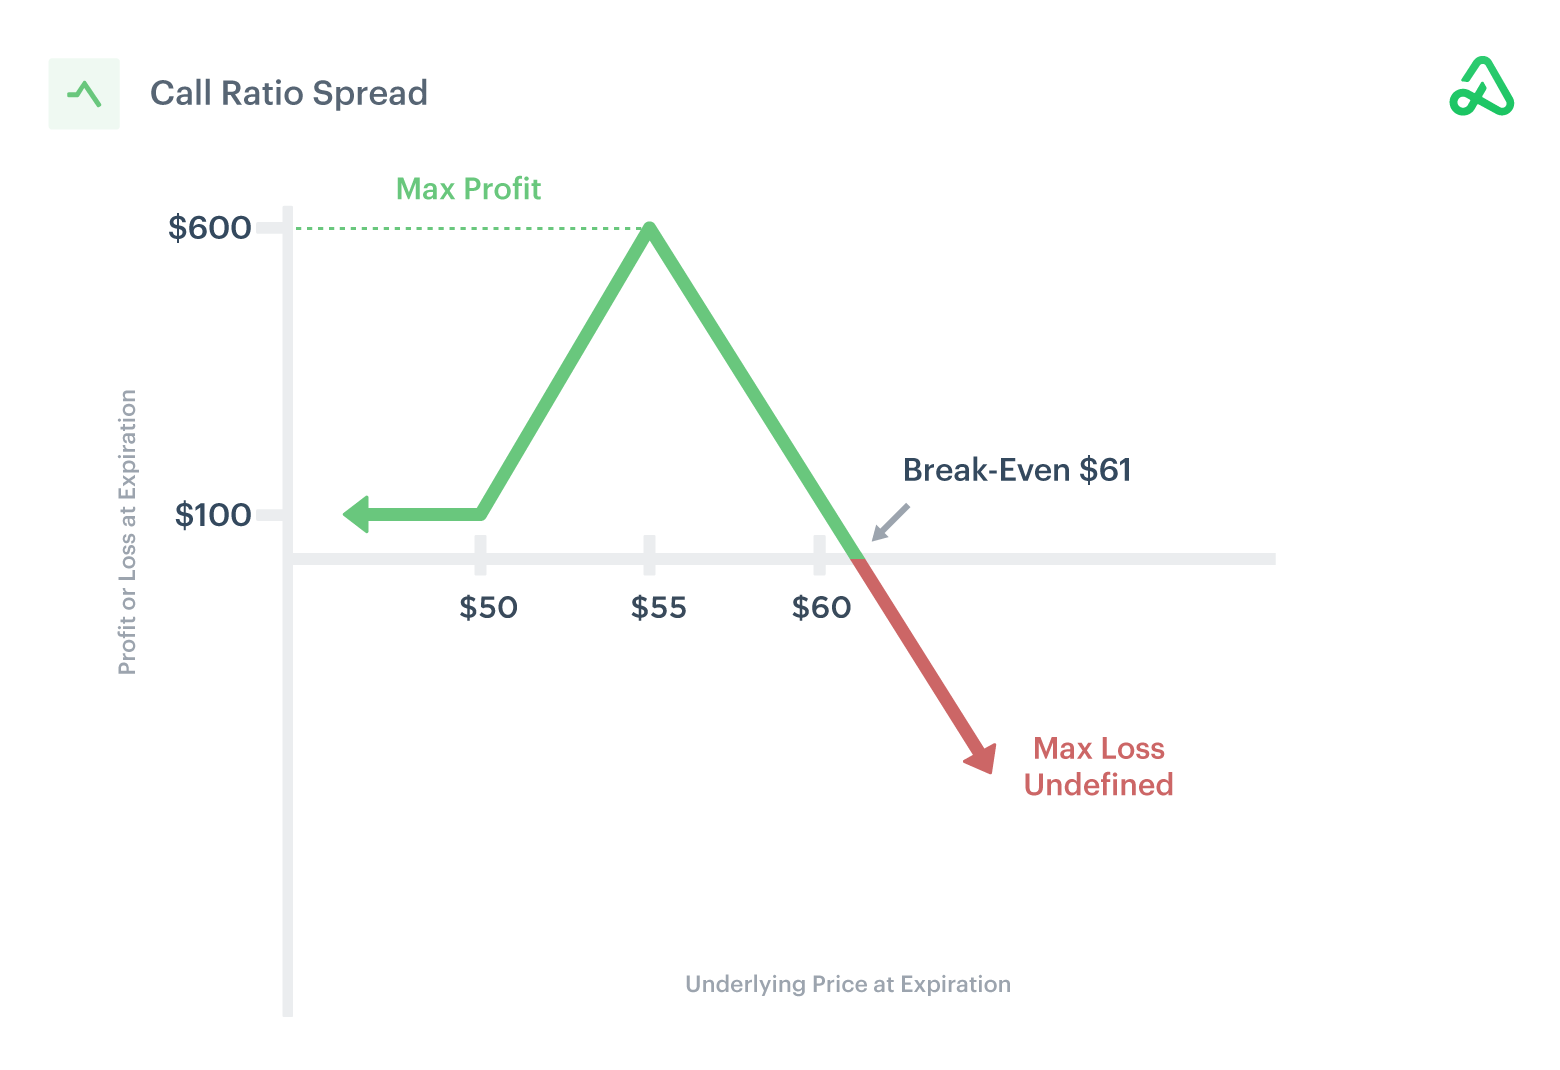 Image of call ratio spread payoff diagram showing max profit, max loss, and break-even points